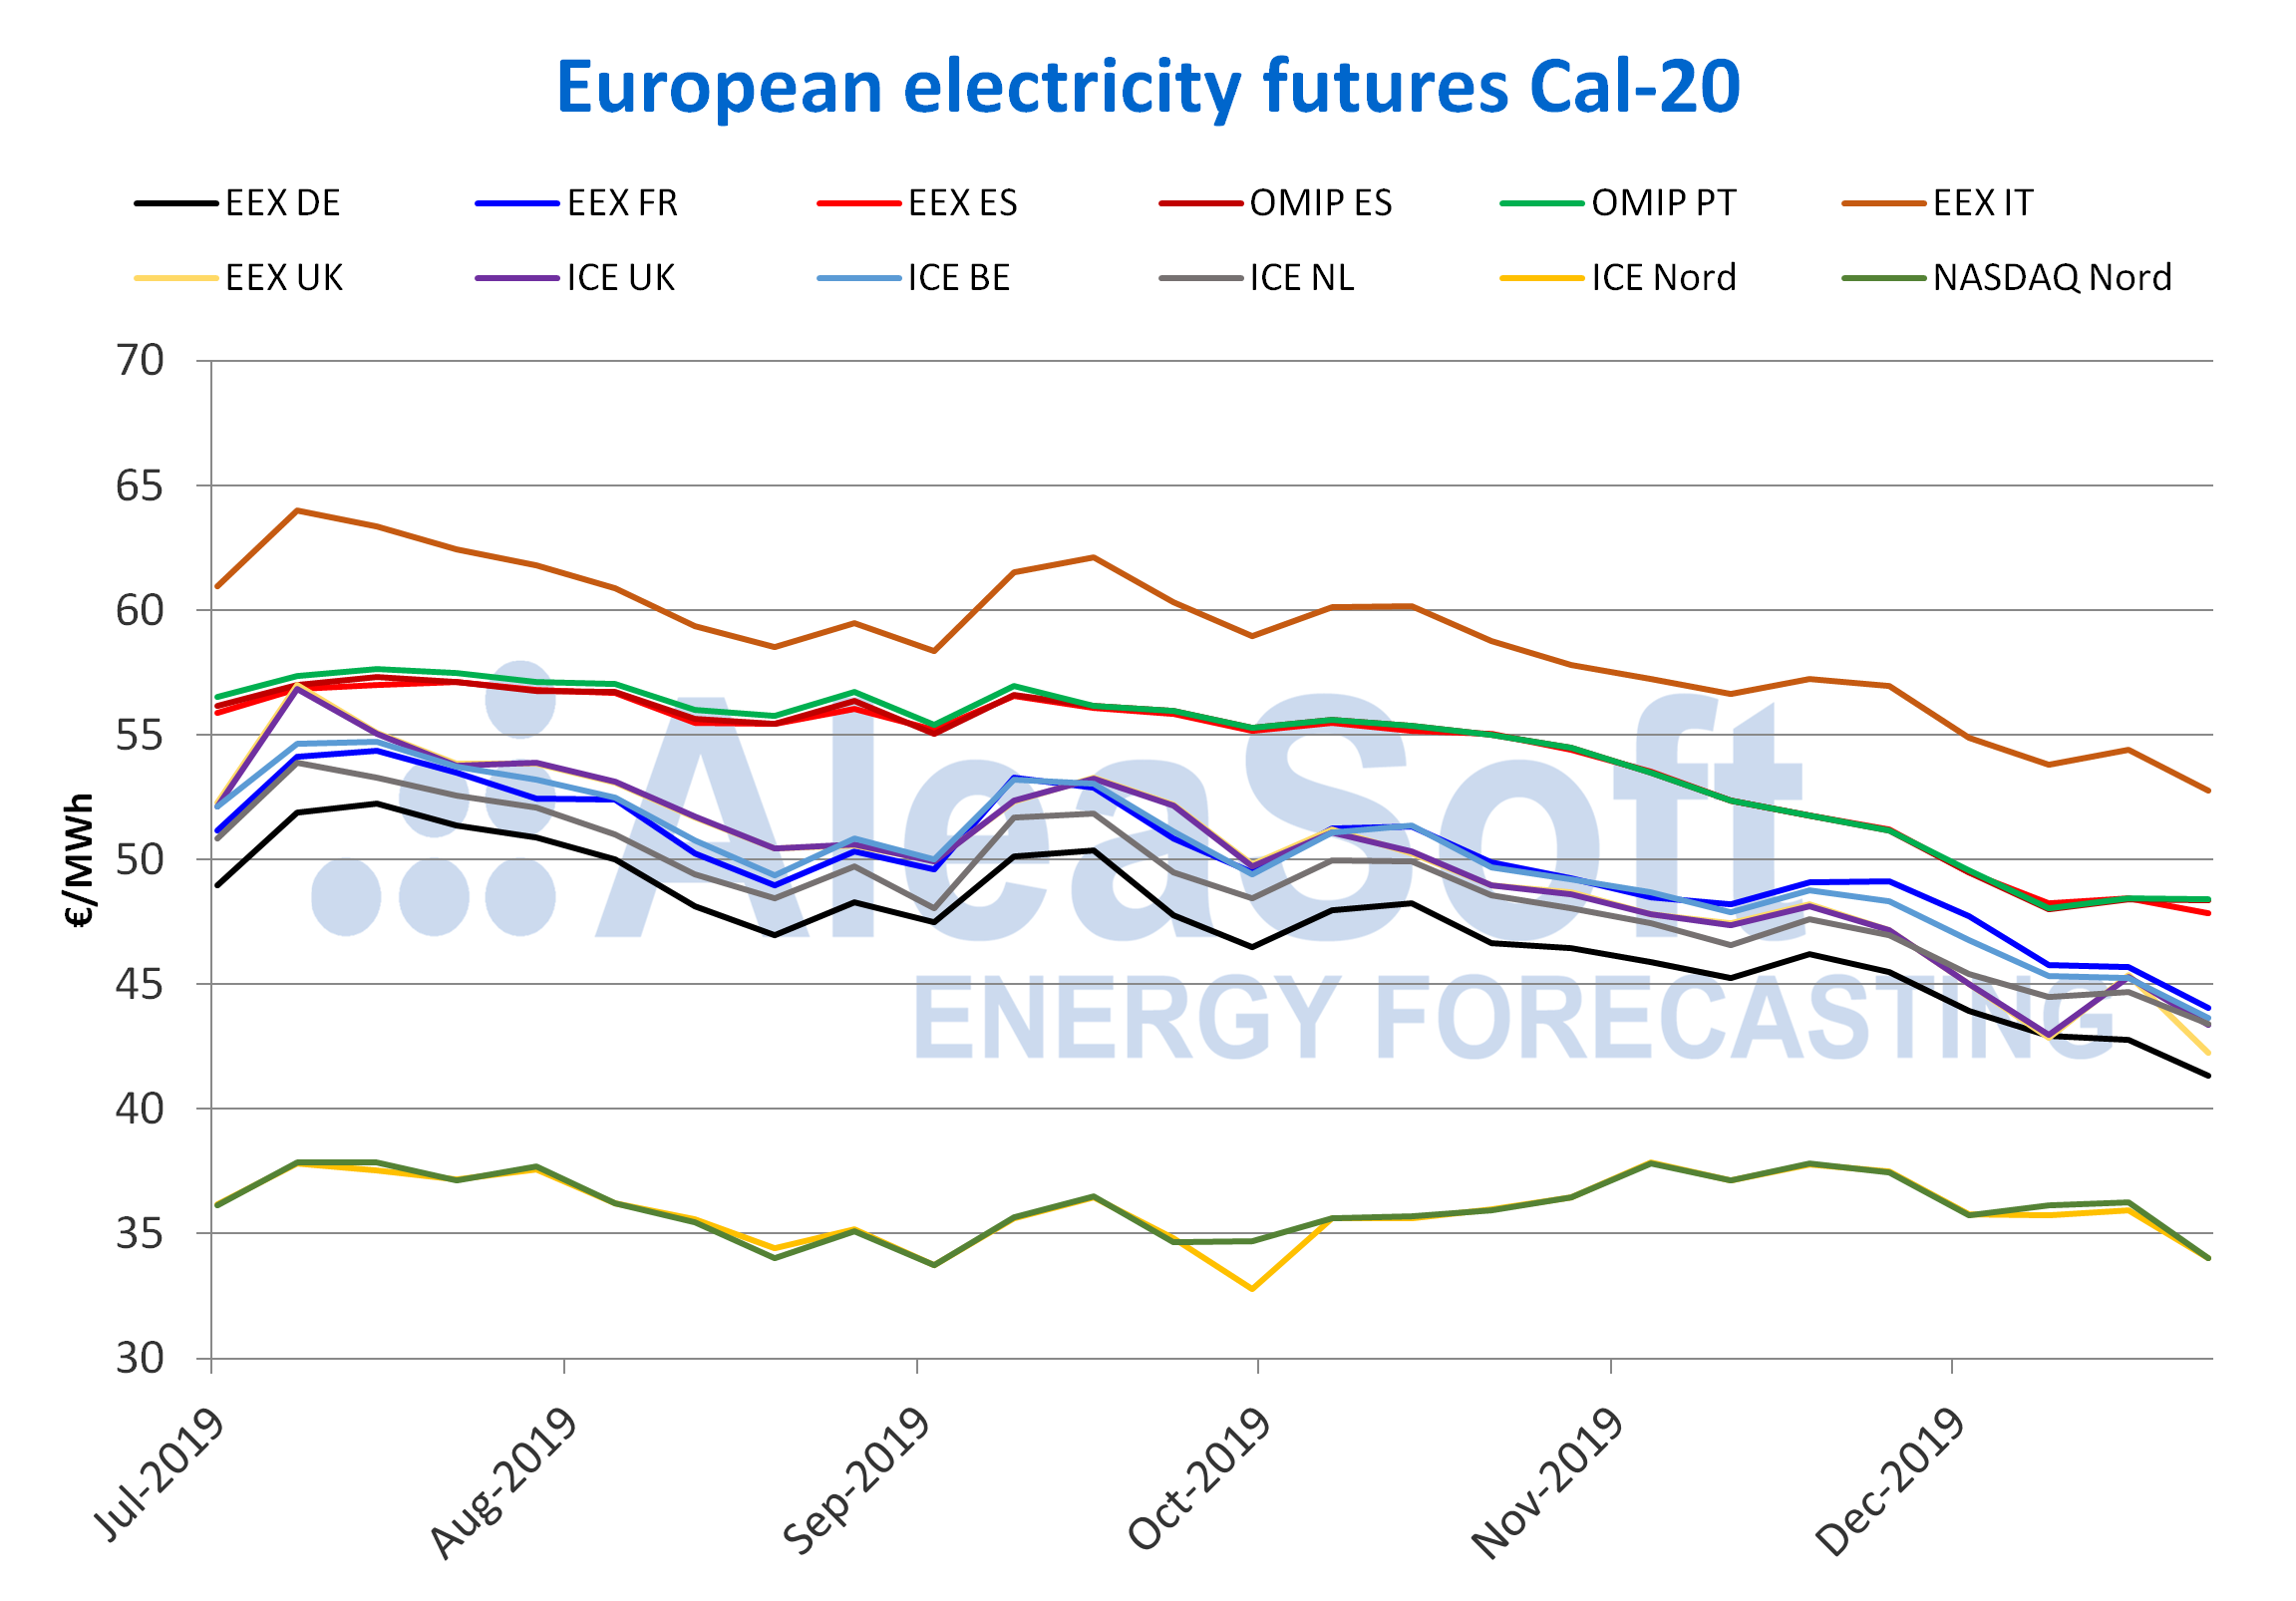 AleaSoft - Electricity future price 2020 second half 2019